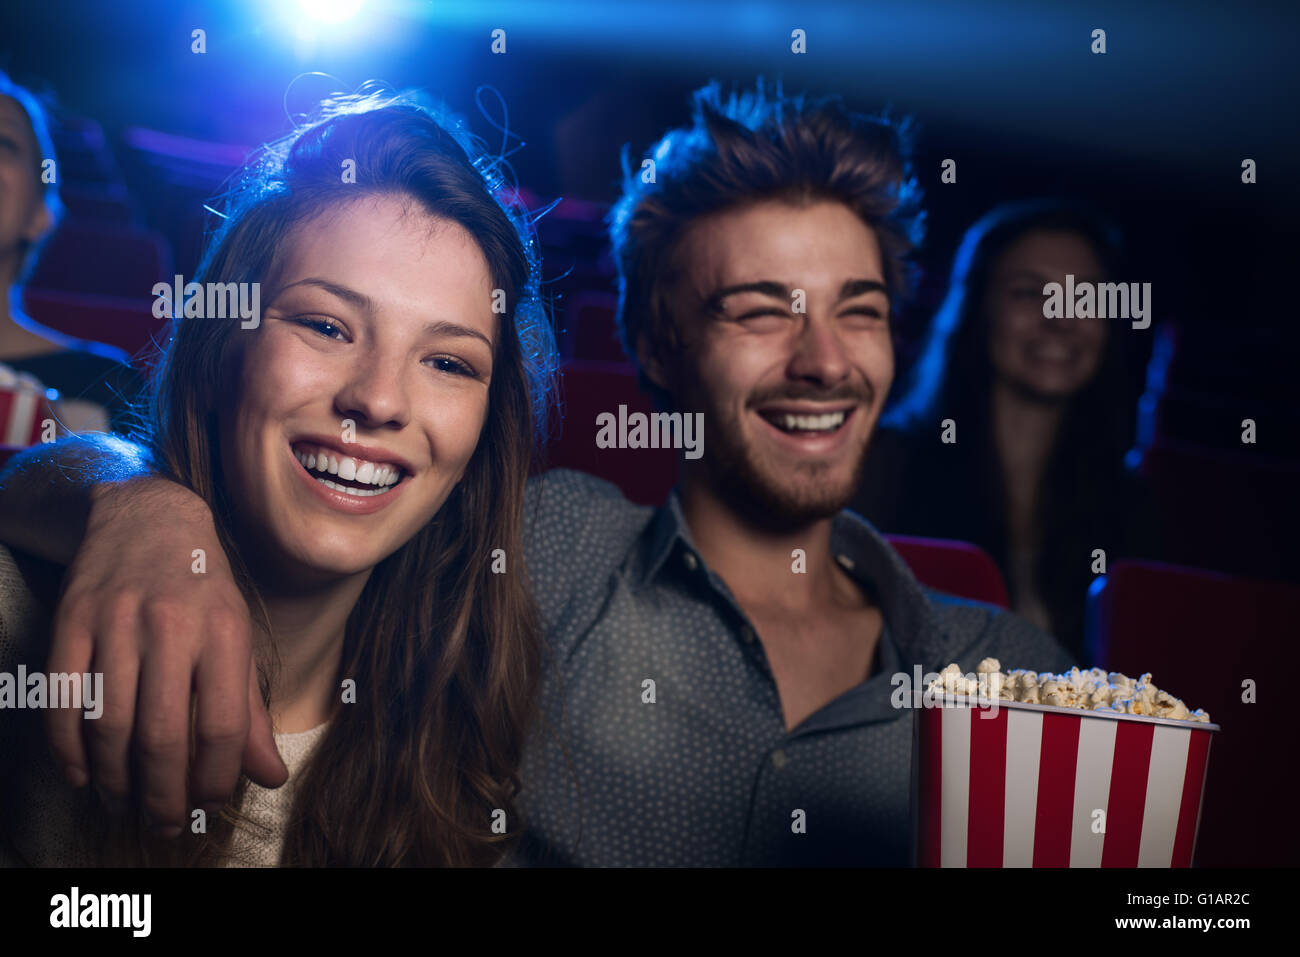 Happy young couple in the movie theater watching a film and smiling, entertainment and togetherness concept - Stock Image